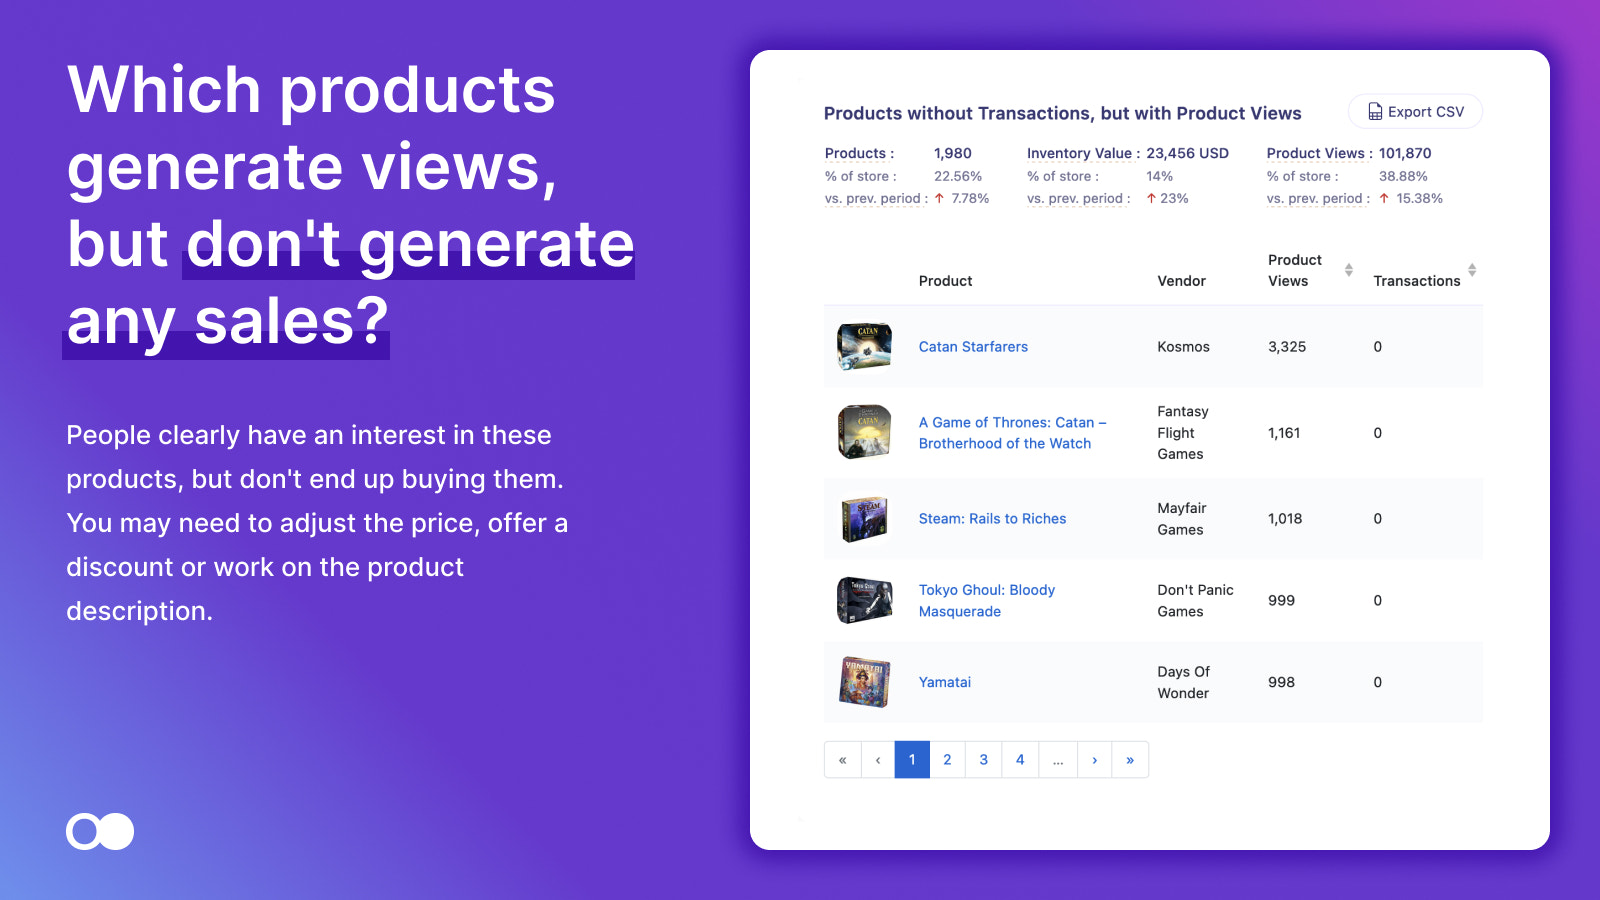 Products with views, but zero transactions